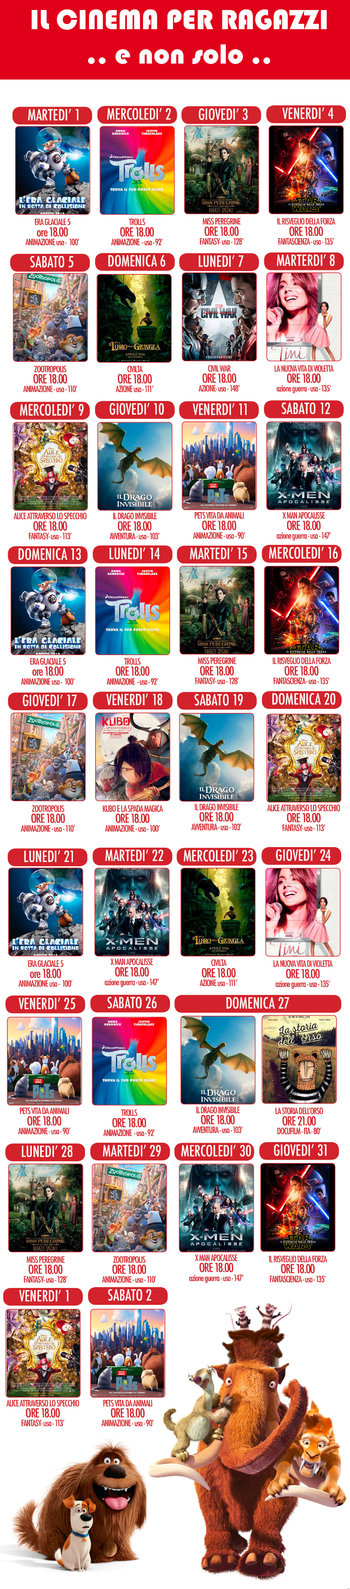 Cinema per ragazzi a Cesuna - estate 2017